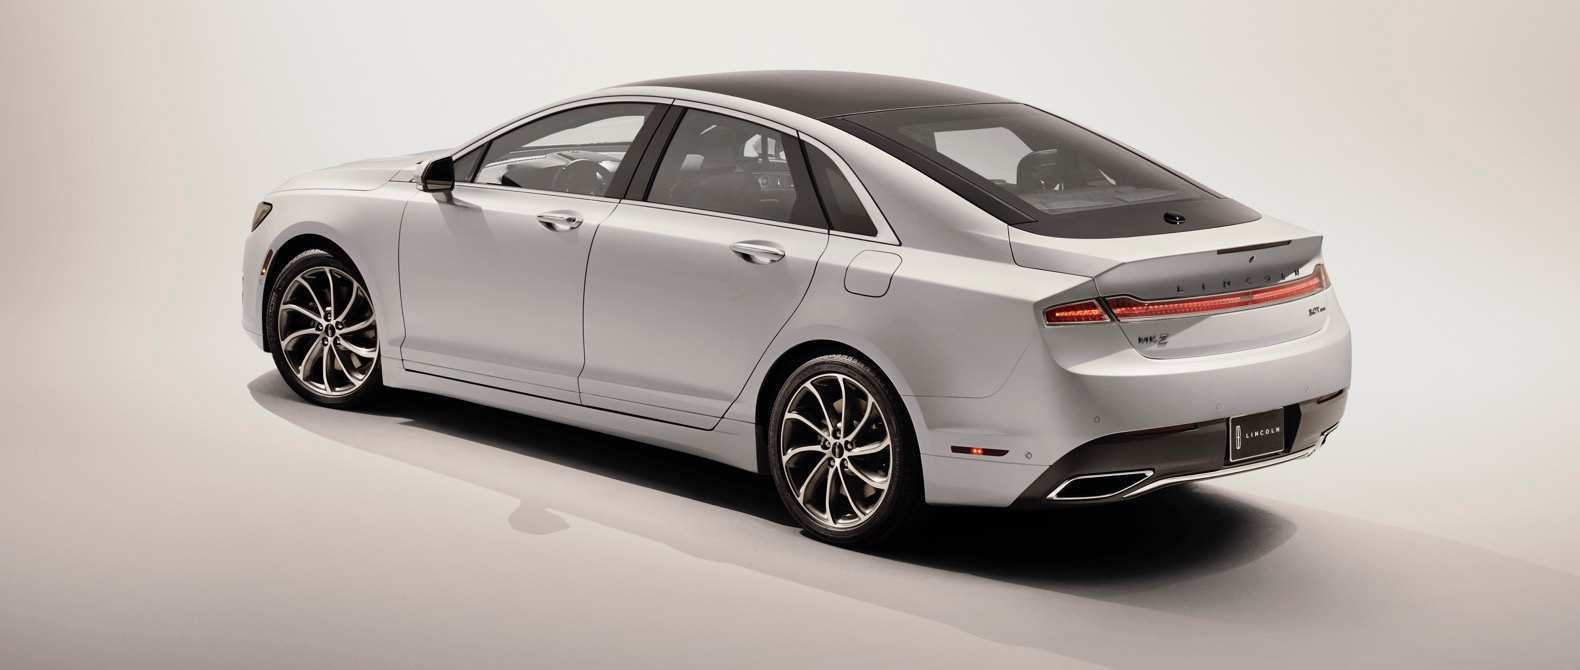 2020 Lincoln Mkz Review.2020 Lincoln Mkz Review Cars 2020